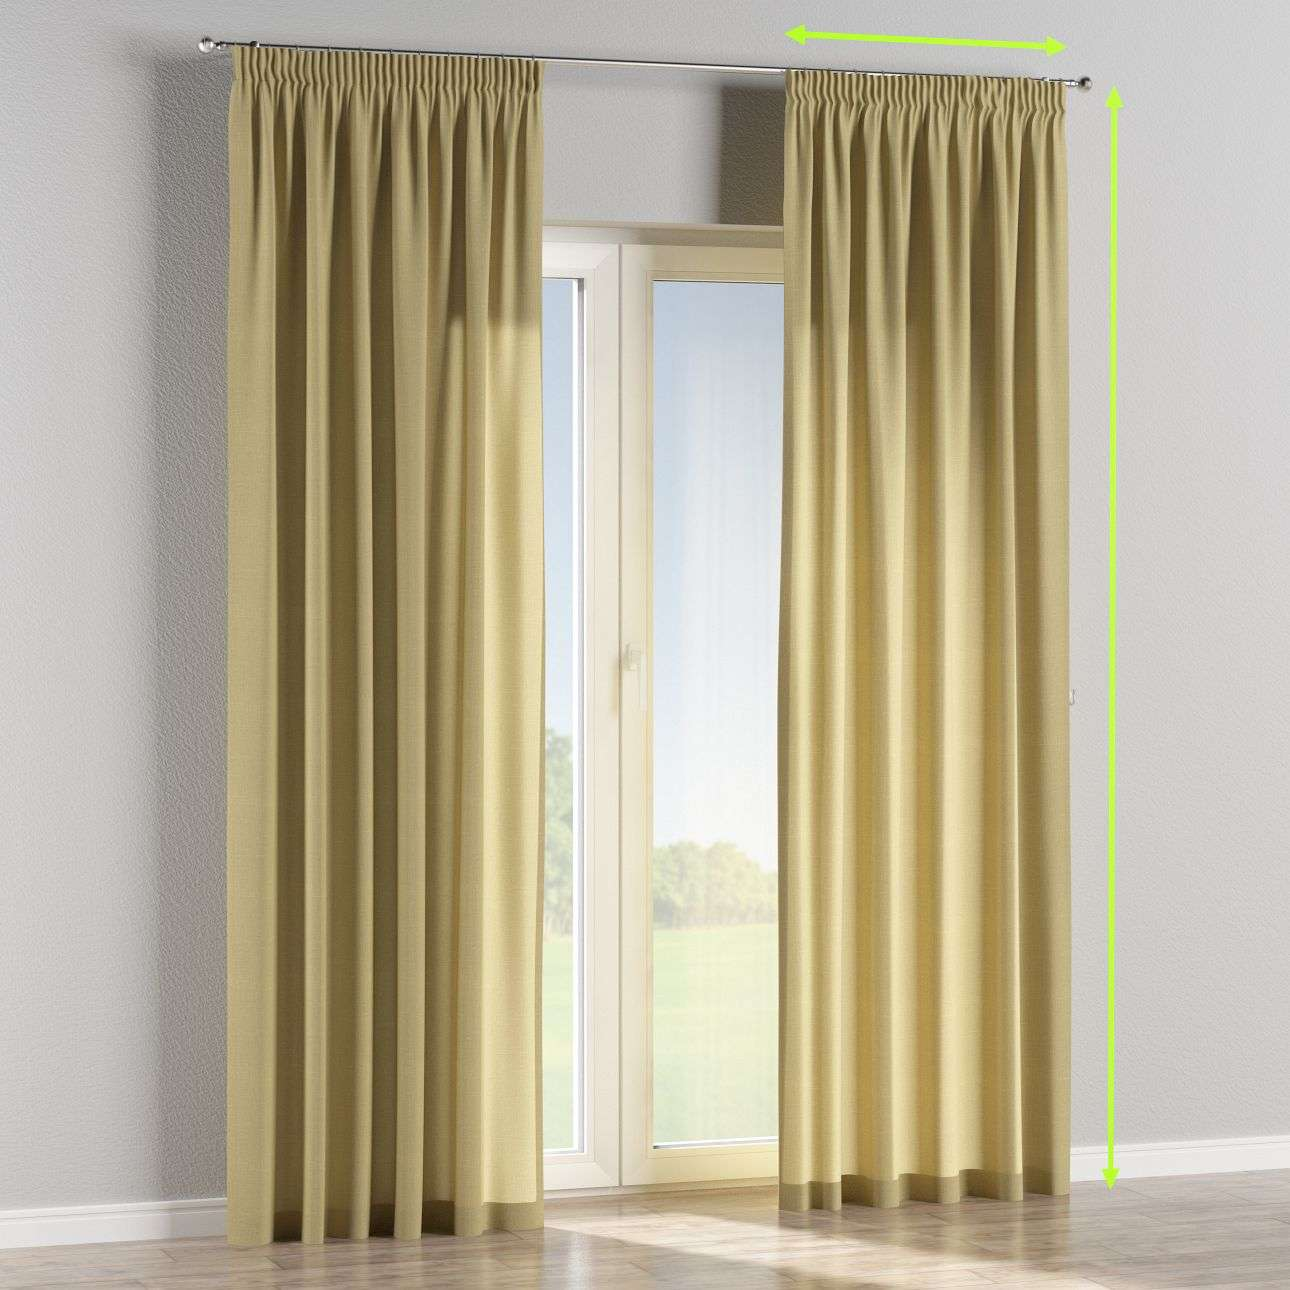 Pencil pleat curtains in collection SALE, fabric: 136-22